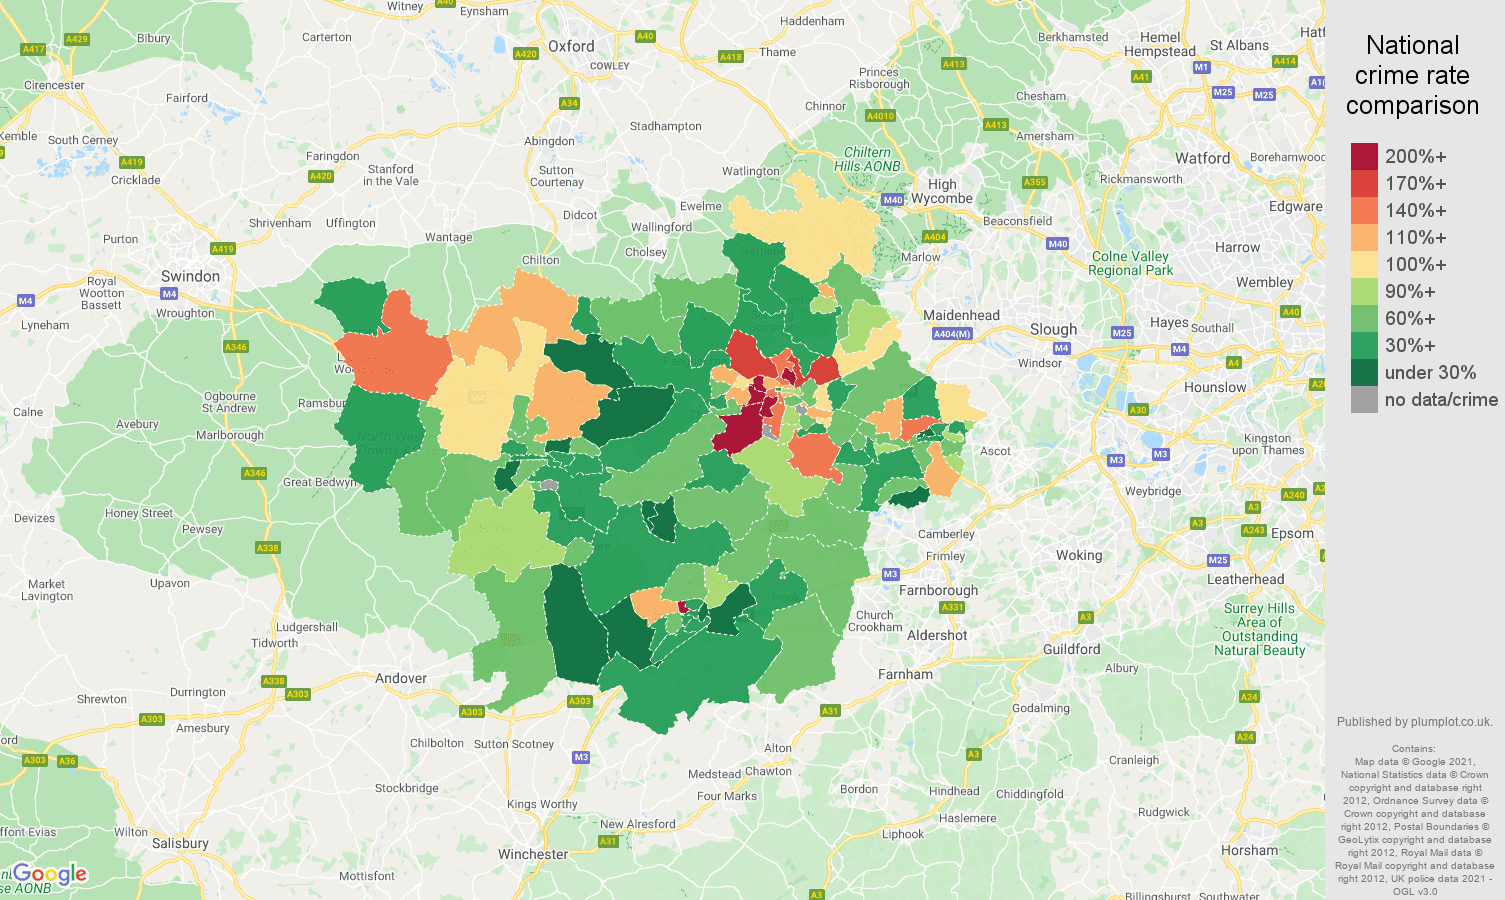 Reading vehicle crime rate comparison map